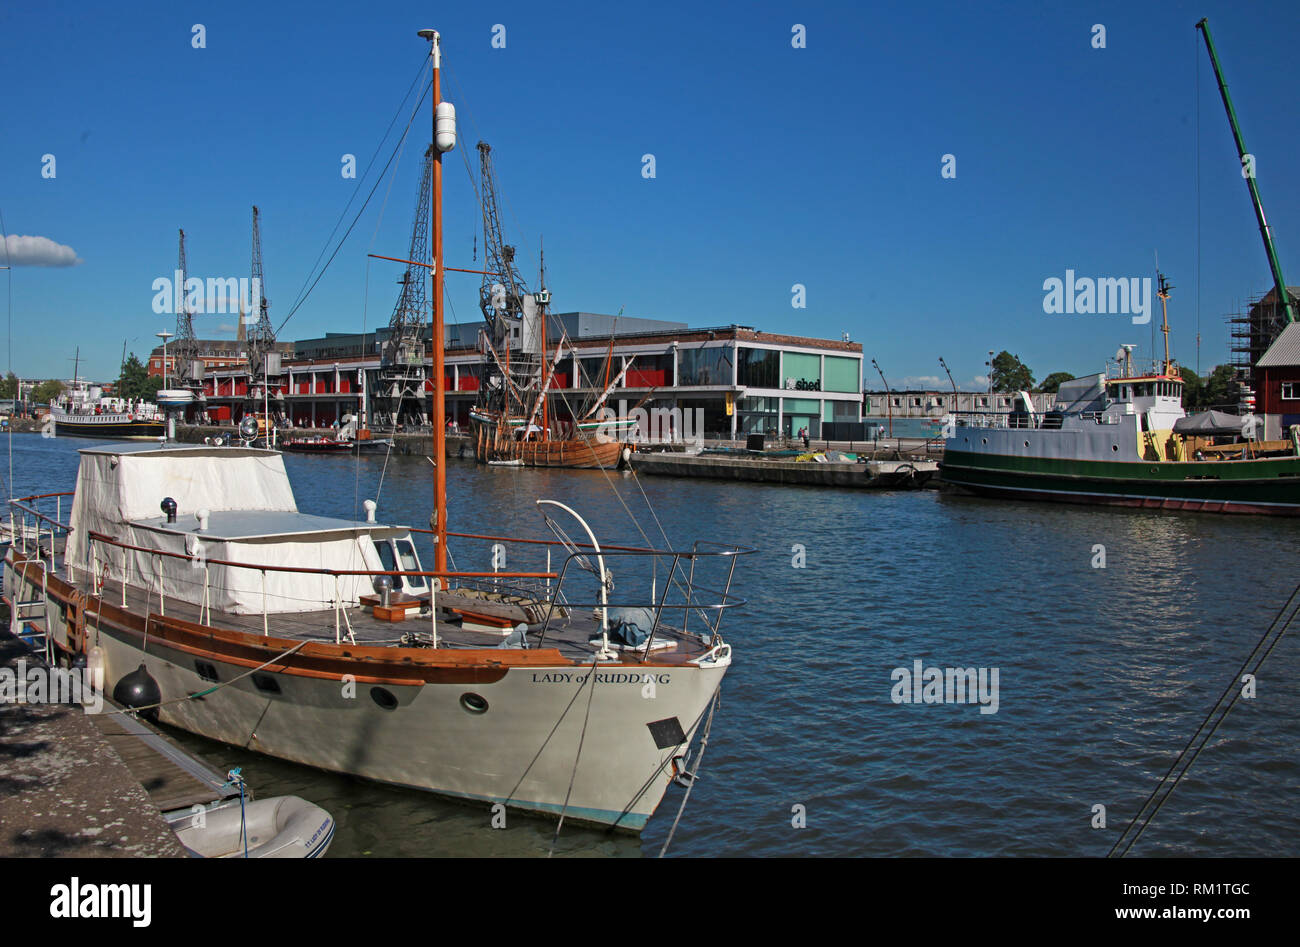 GoTonySmith,HotpixUK,@HotpixUK,England,UK,water,waterside,South West England,City Centre,Lady Of Ruding,Lady Rudding,Collision,Cornwall,dock,docks,city centre,BS1,Motor yacht,at Bristol Docks,Welsh Back,Avon,BS1 4SP,boat,ship,white,hull,shipping,Chief Inspector of Marine Accidents,Datchet barge,Fleur de Lys Motor yacht,Fleur de Lys,repair,repairs,moored,mooring,pleasure boat,sailing,sailing boat,summer